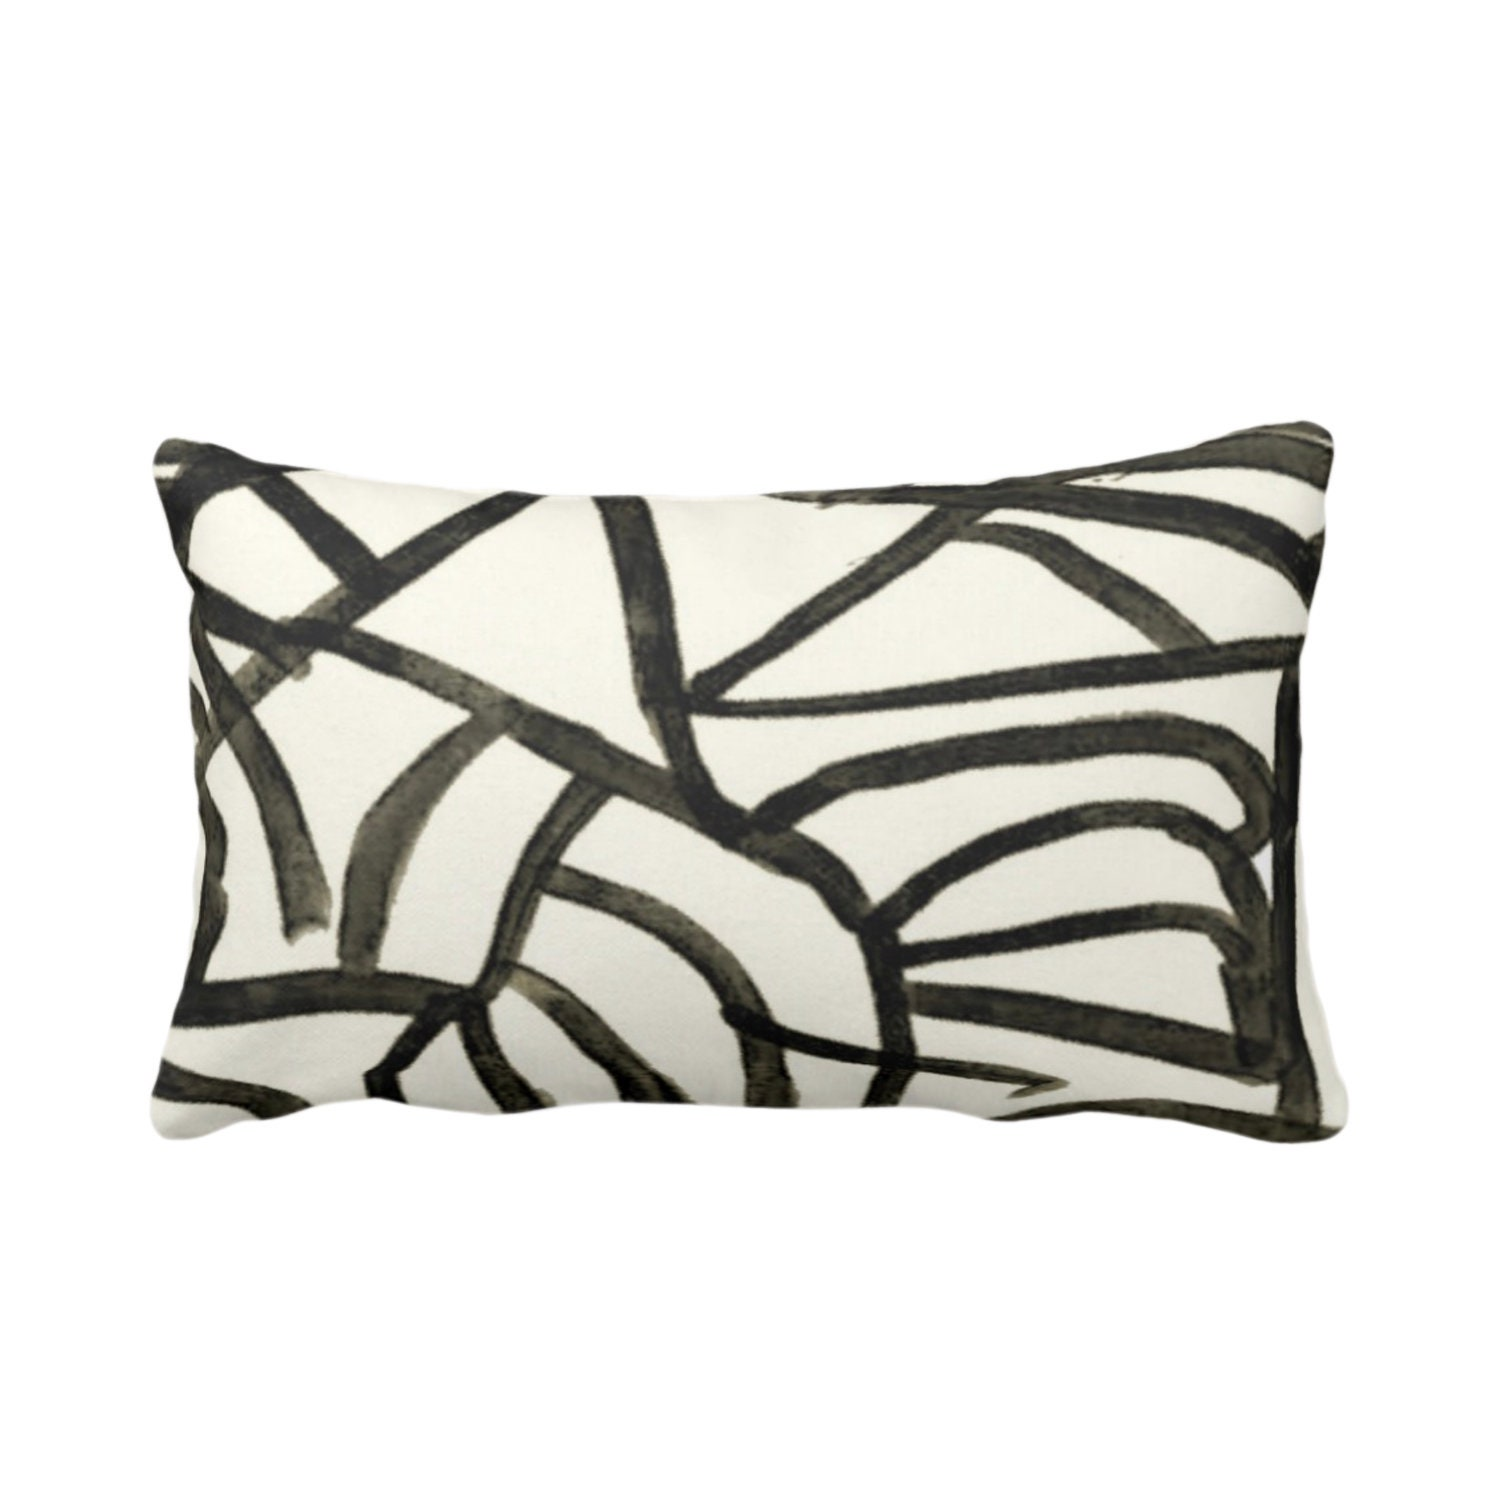 Abstract Print Throw Pillow or Cover, Ivory/Charcoal 14 x 20 Lumbar